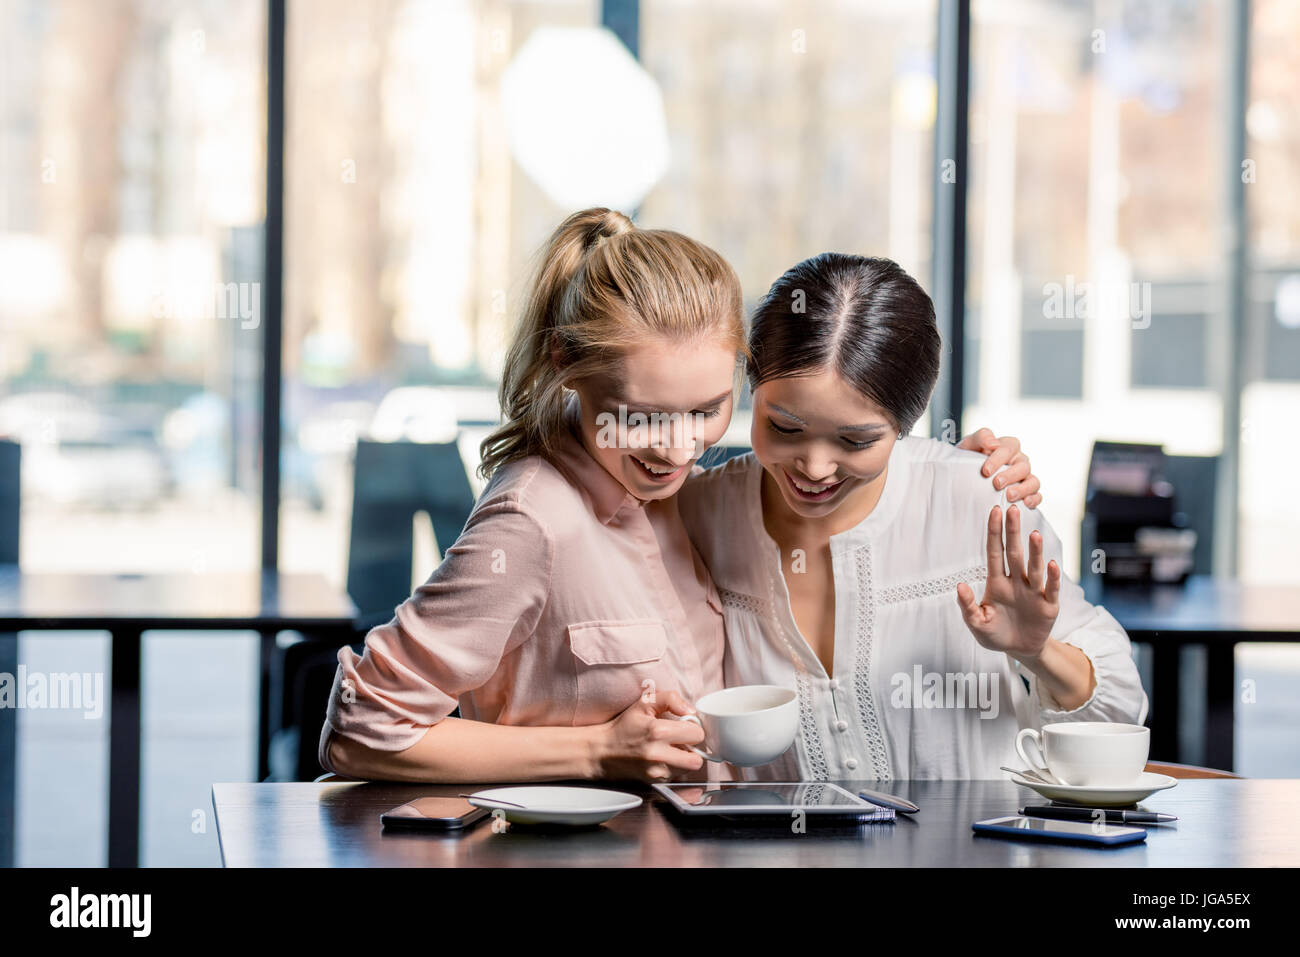 Smiling young women using digital tablet while drinking coffee in cafe, lunch meeting concept - Stock Image